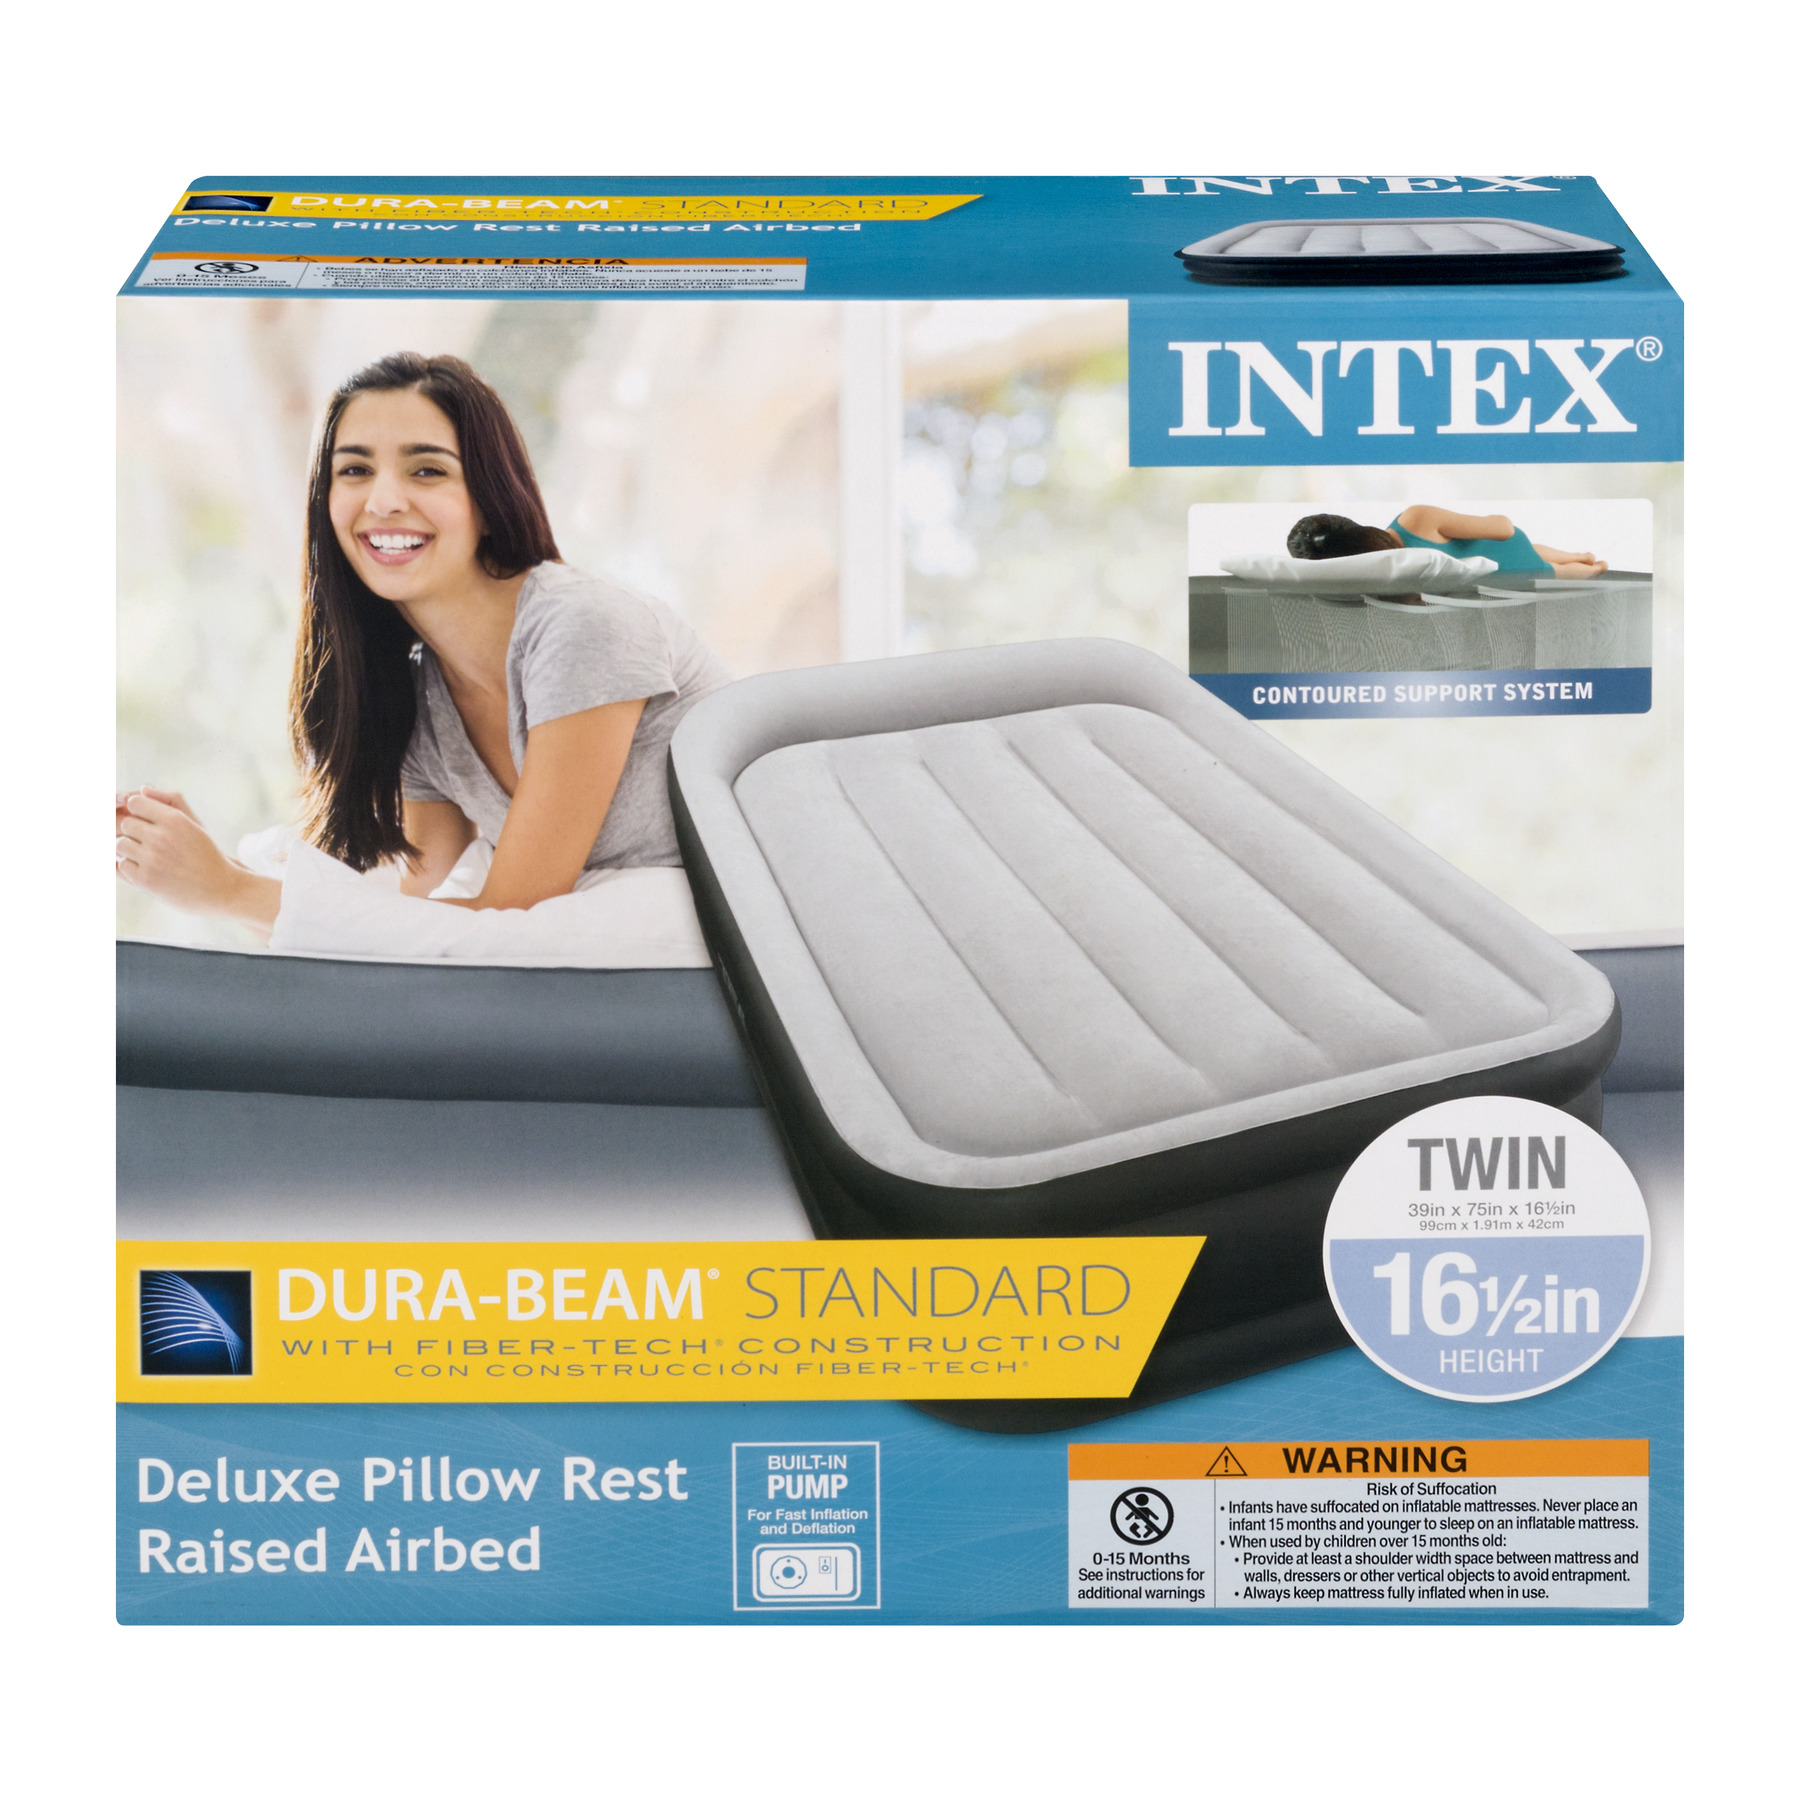 "Intex 16.5"" DuraBeam Deluxe Pillow Rest Airbed Mattress with Built-In Pump, Multiple Sizes"